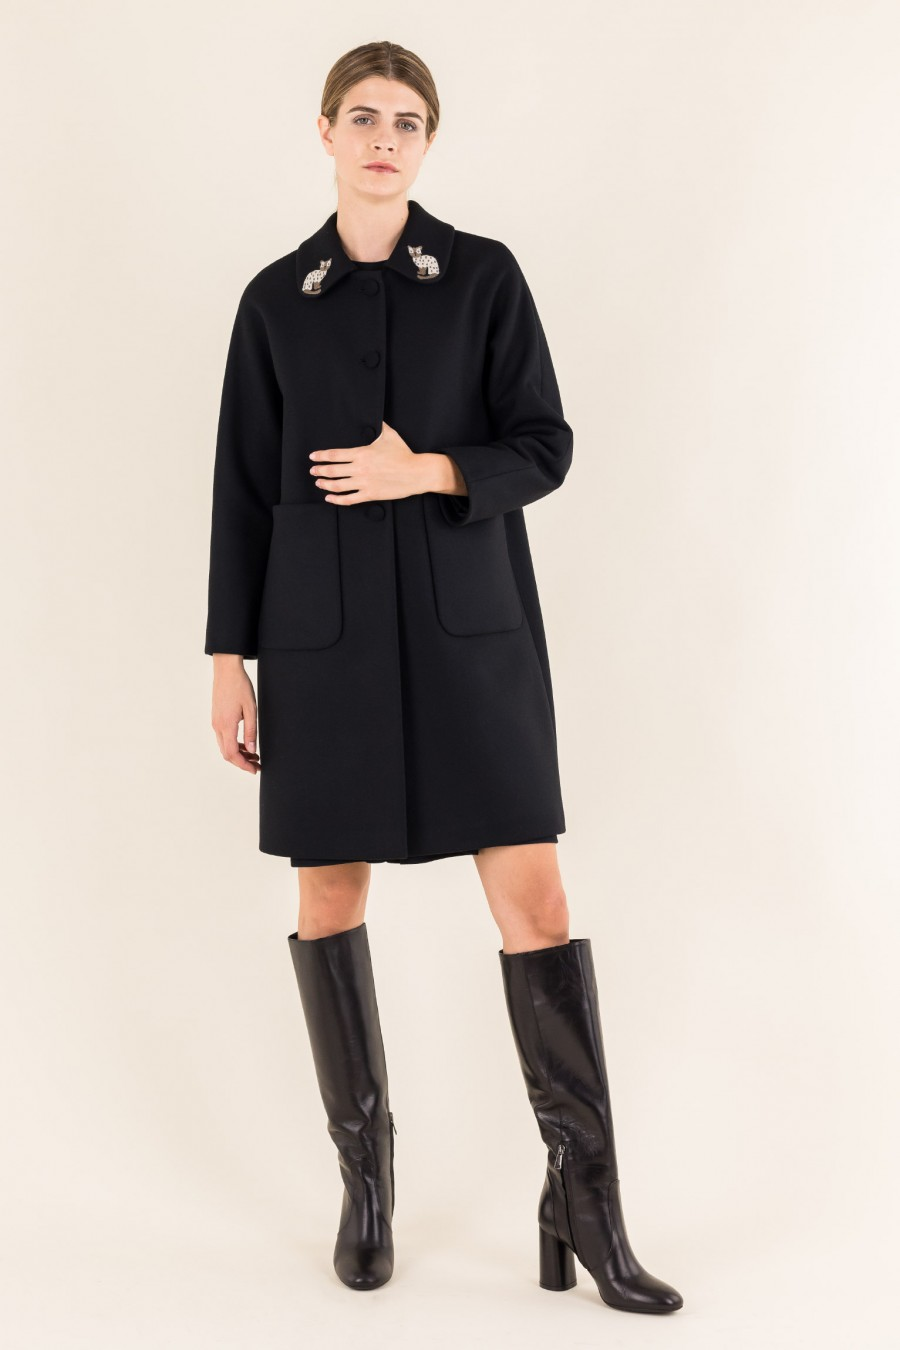 Black coat with cat collar